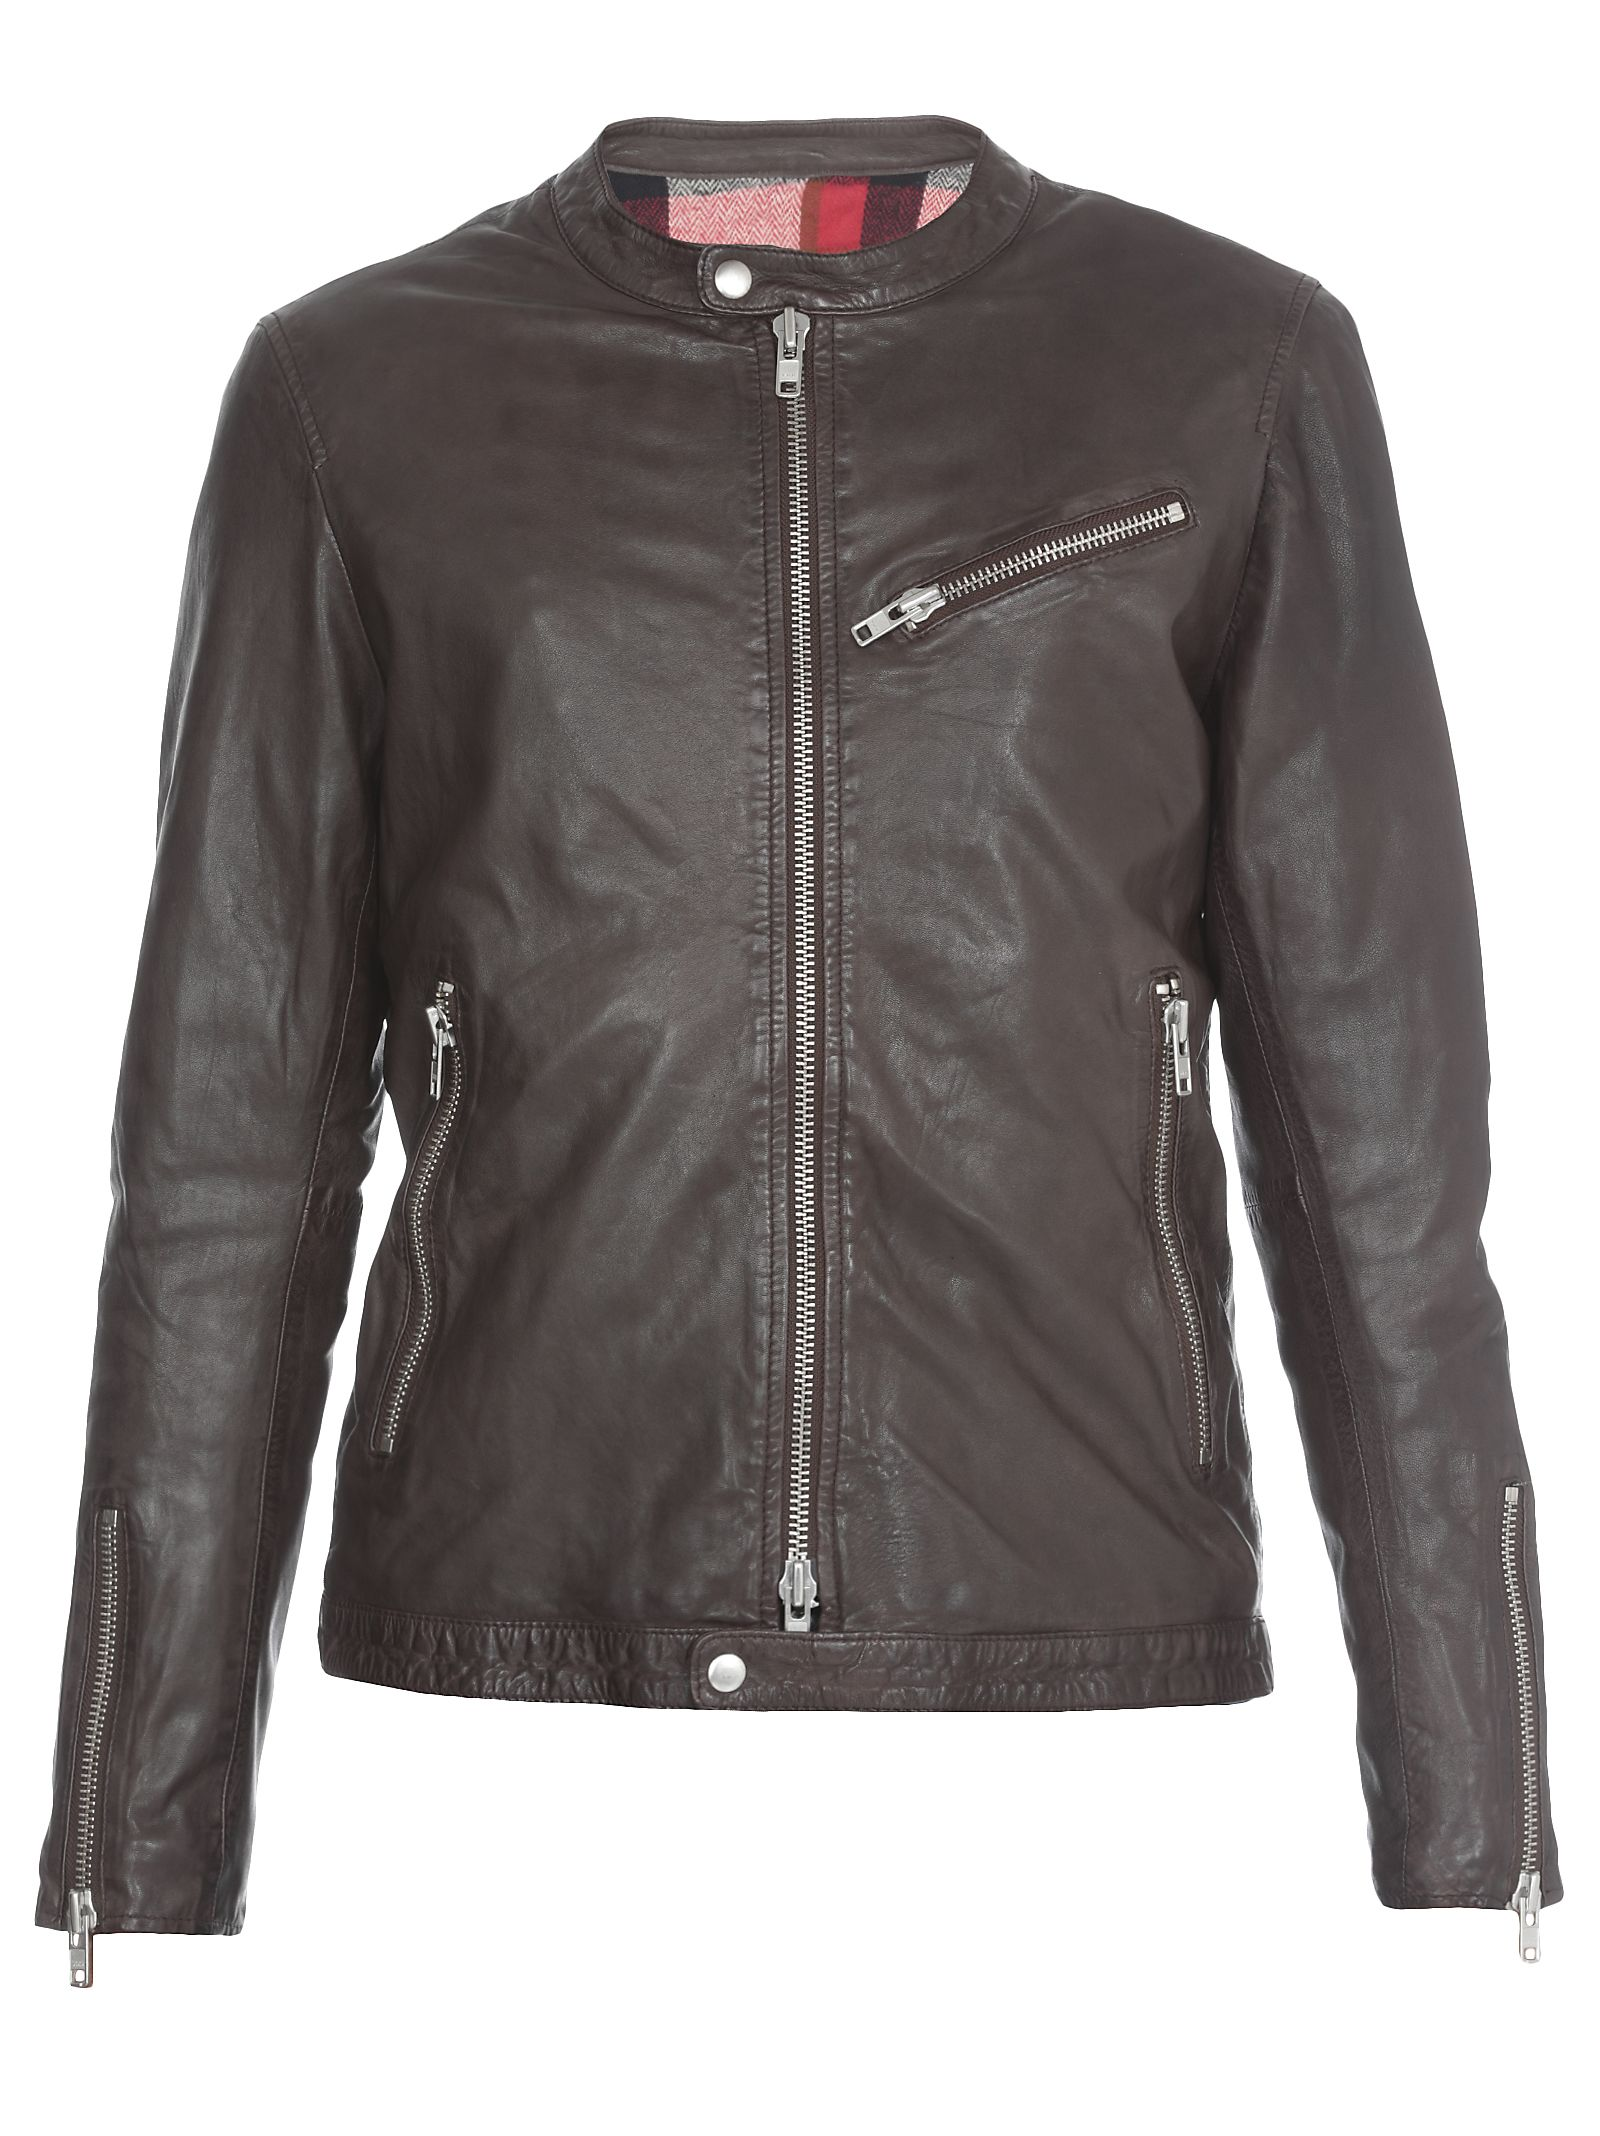 BULLY Leather Jacket in Brown